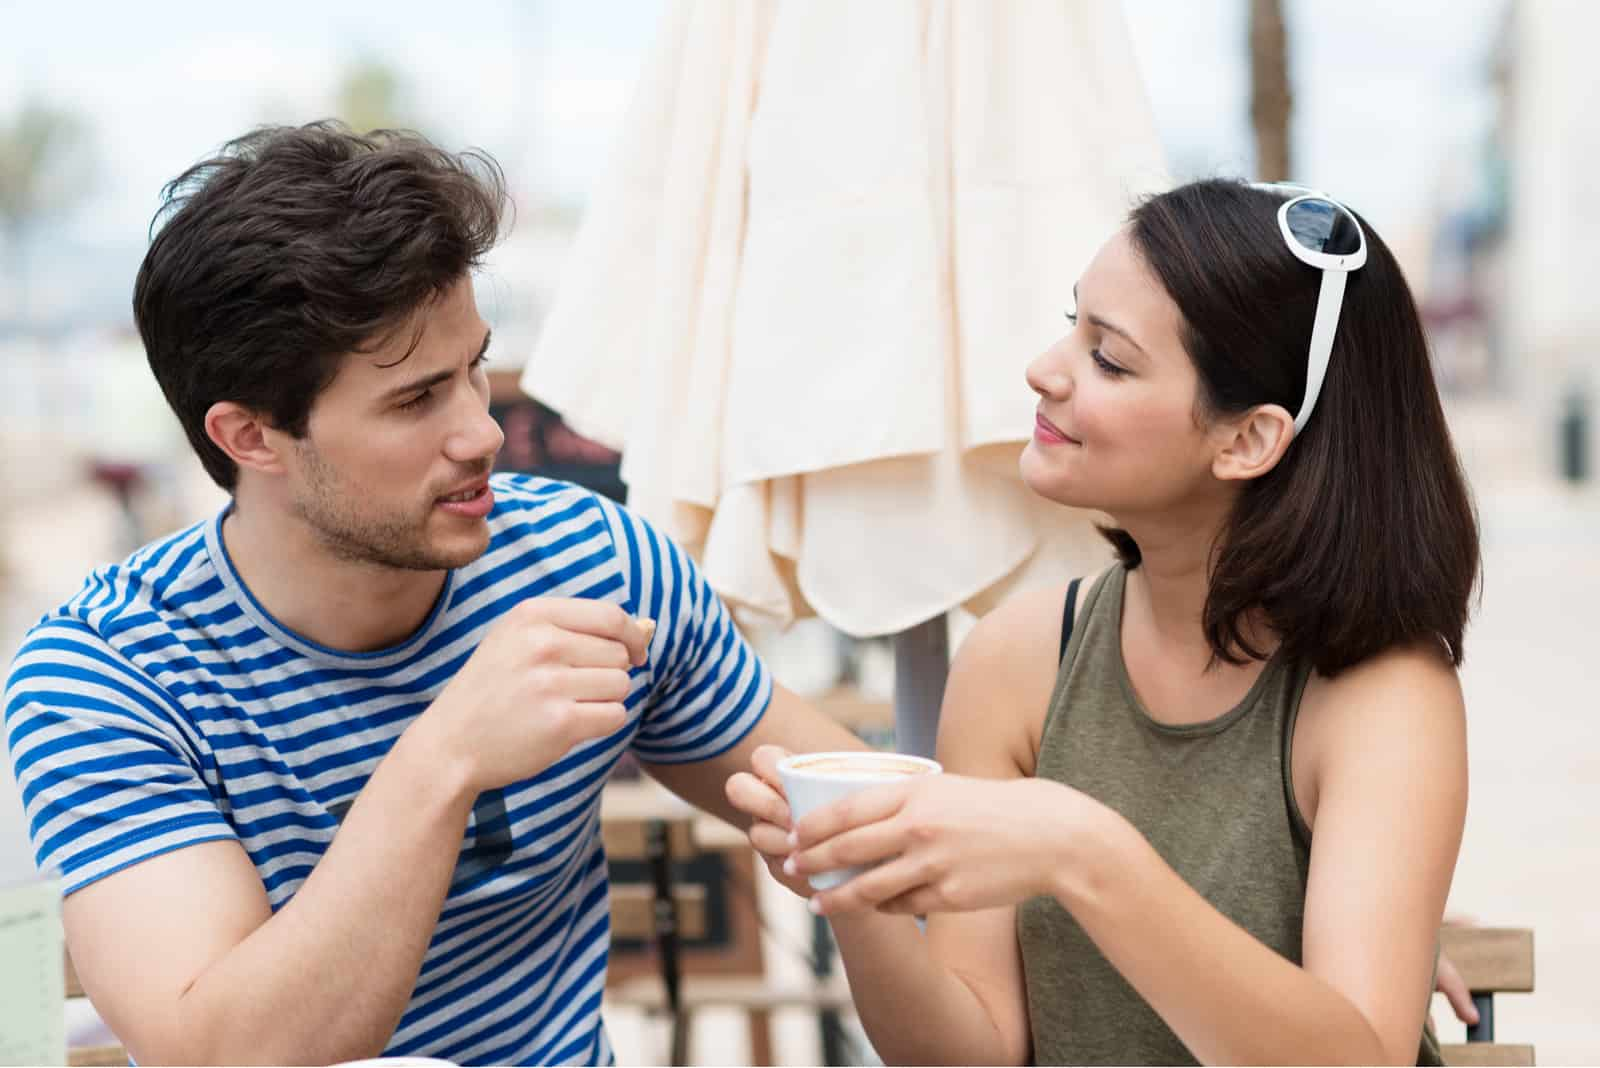 Romantic young couple drinking coffee outdoors seated at a table at a restaurant enjoying a relaxing conversation looking into each others eyes